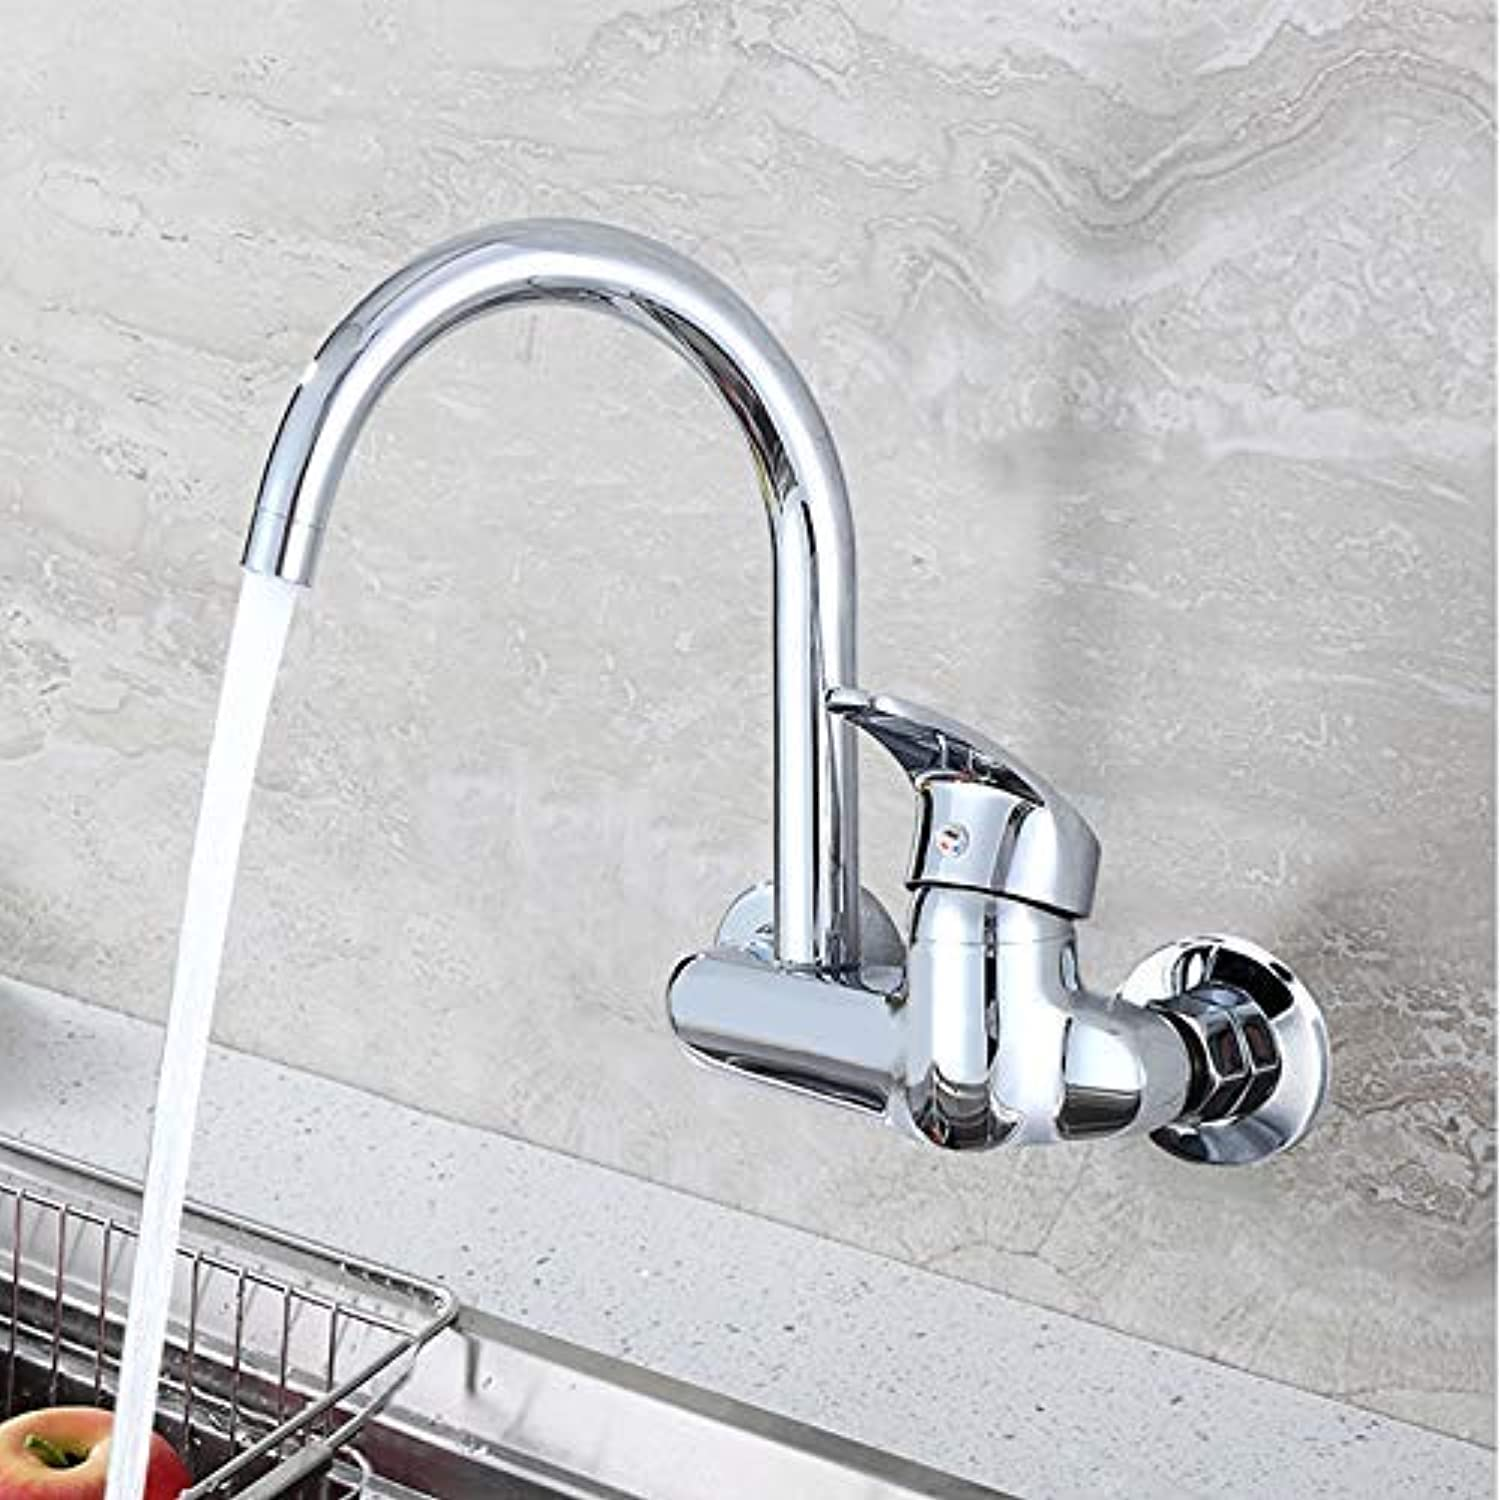 Oudan Kitchen Sink, Laundry Pool, Wall-Mounted Double-Hole Hot and Cold Water Faucet, Hot and Cold Valve, Copper Mixing Valve, A (color   Section B, Size   -)